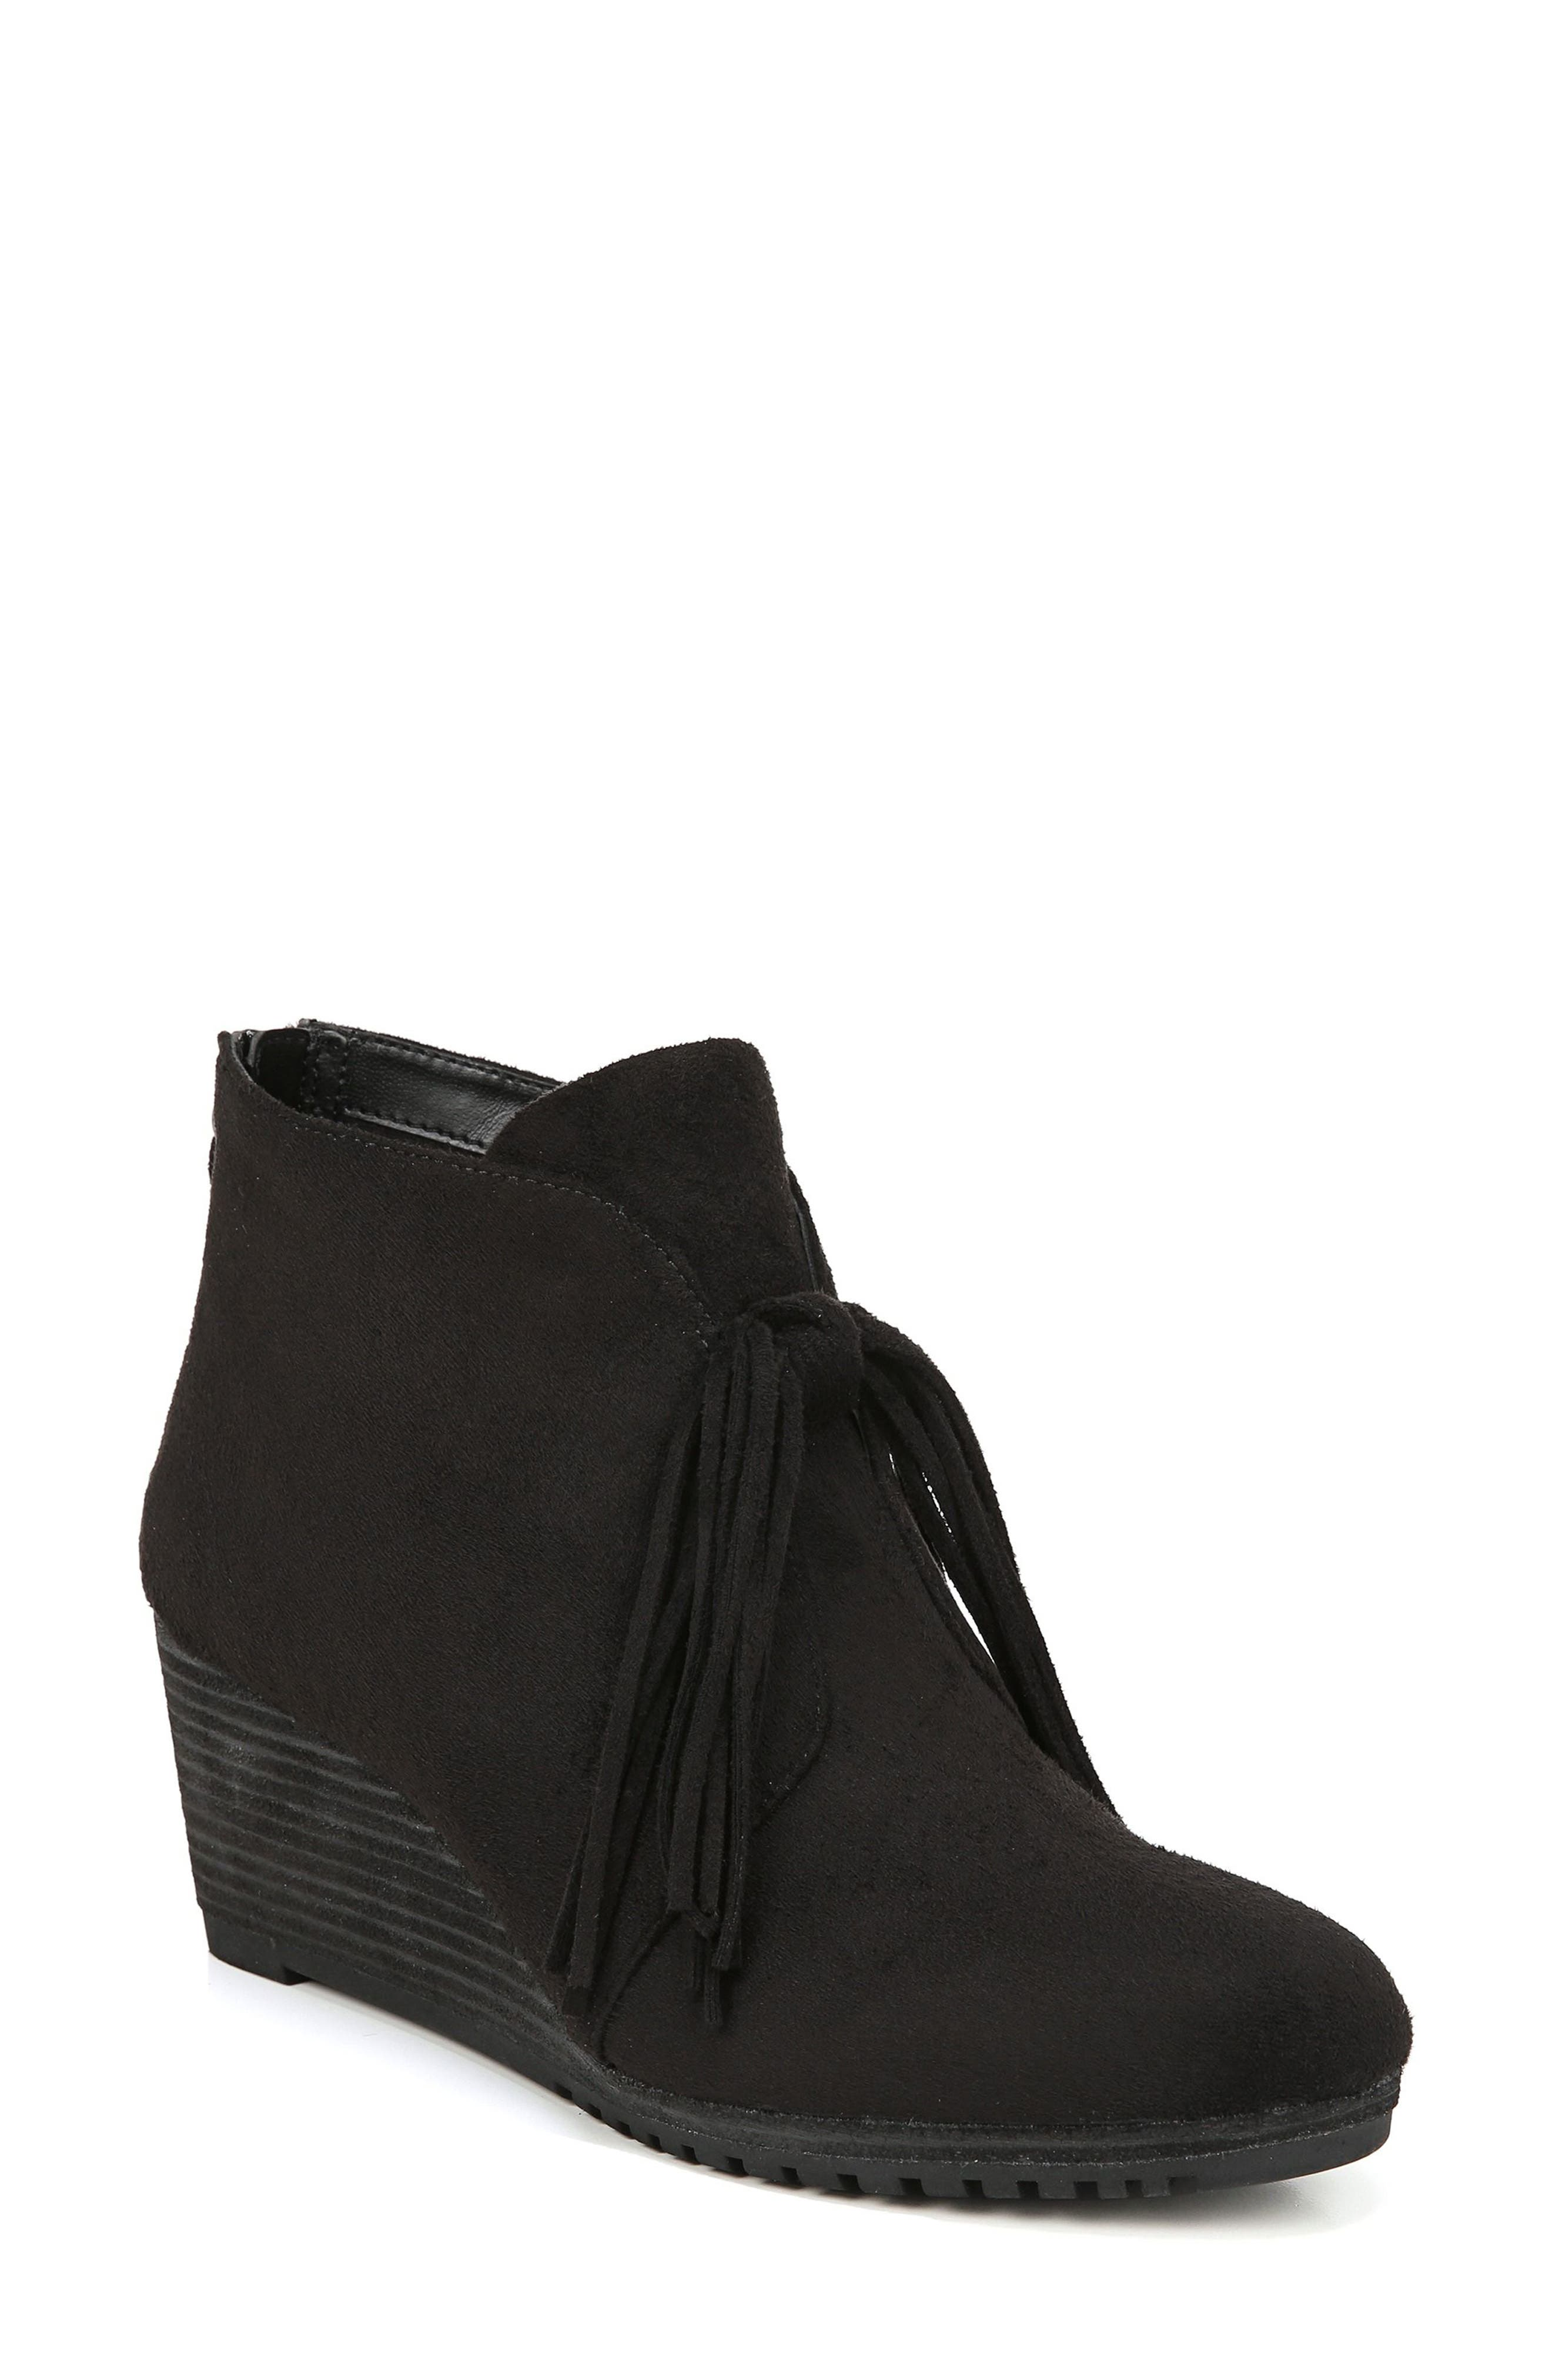 Classify Tassel Wedge Bootie,                         Main,                         color, BLACK FABRIC